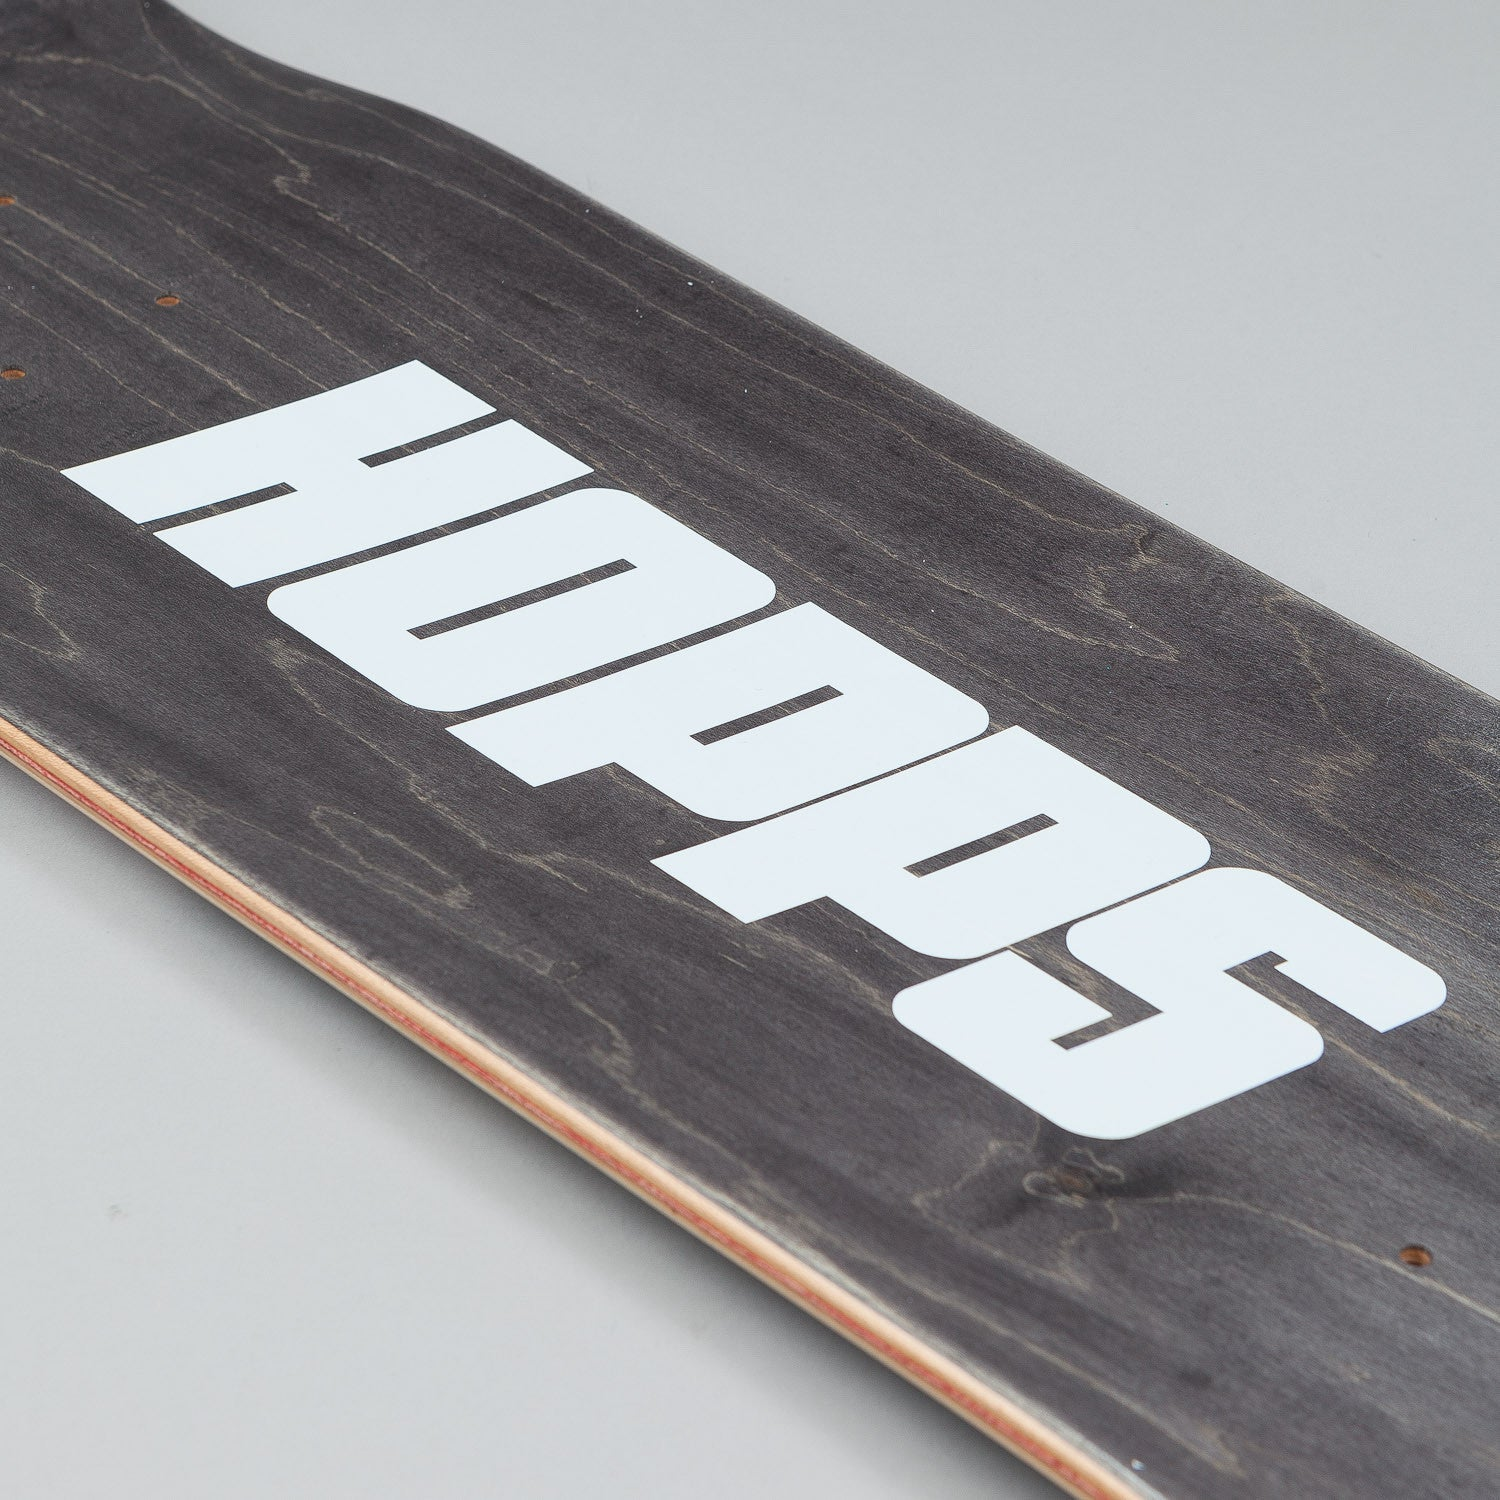 Hopps Concrete Jungle Deck 1 of 2 - 8.125""